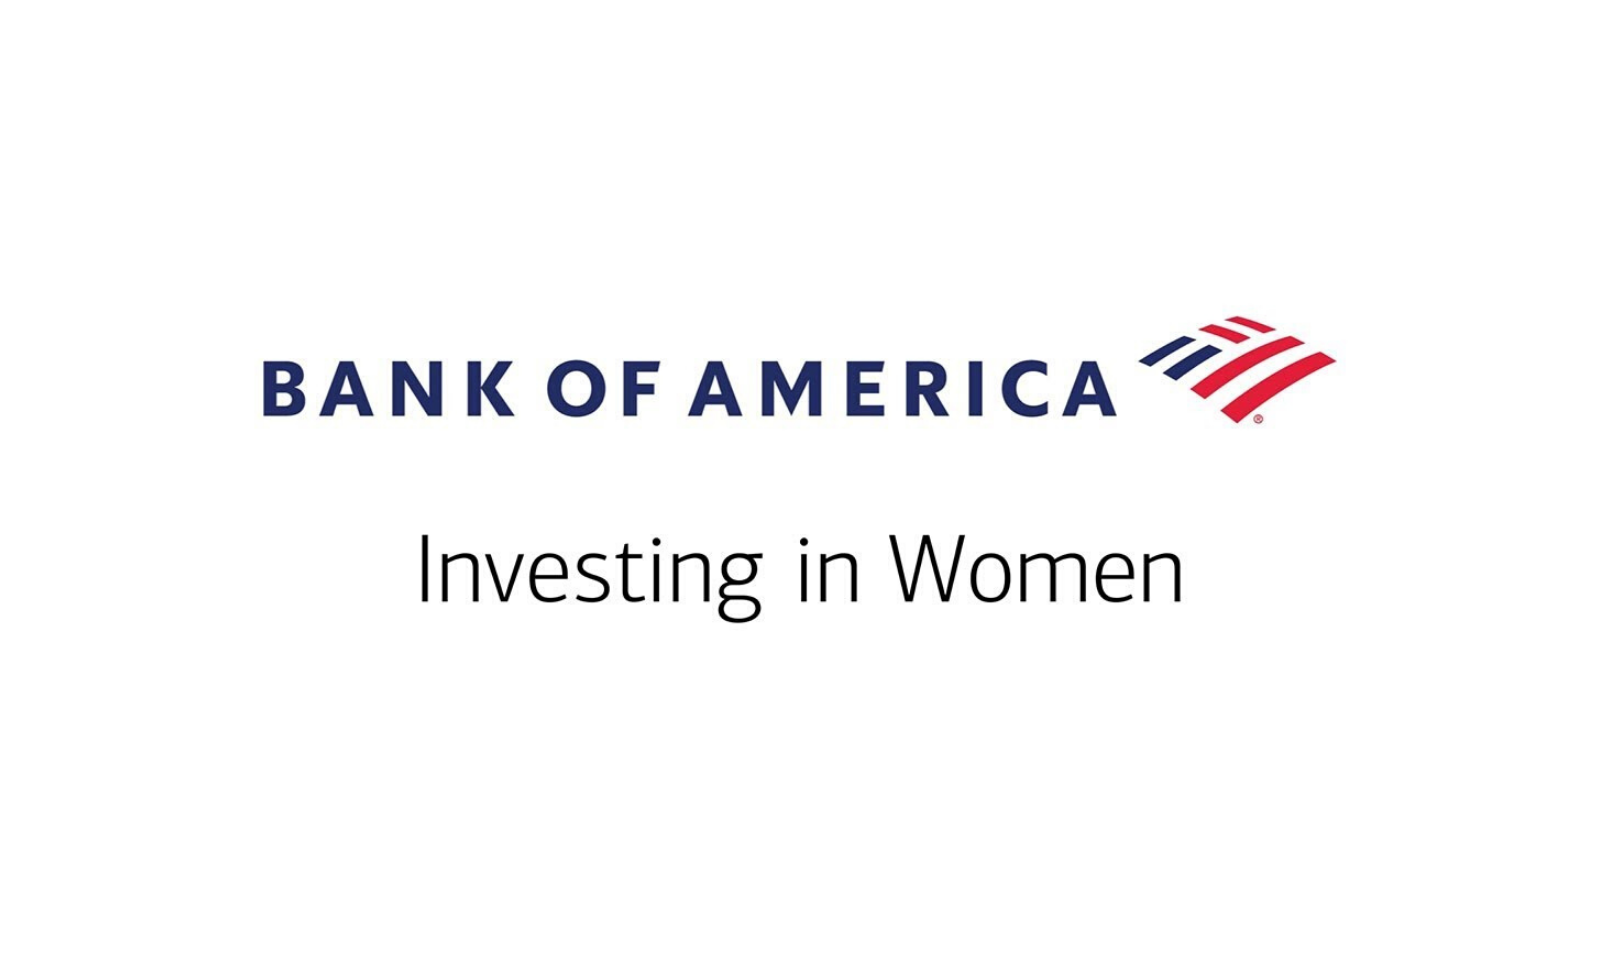 bank of america investing in women